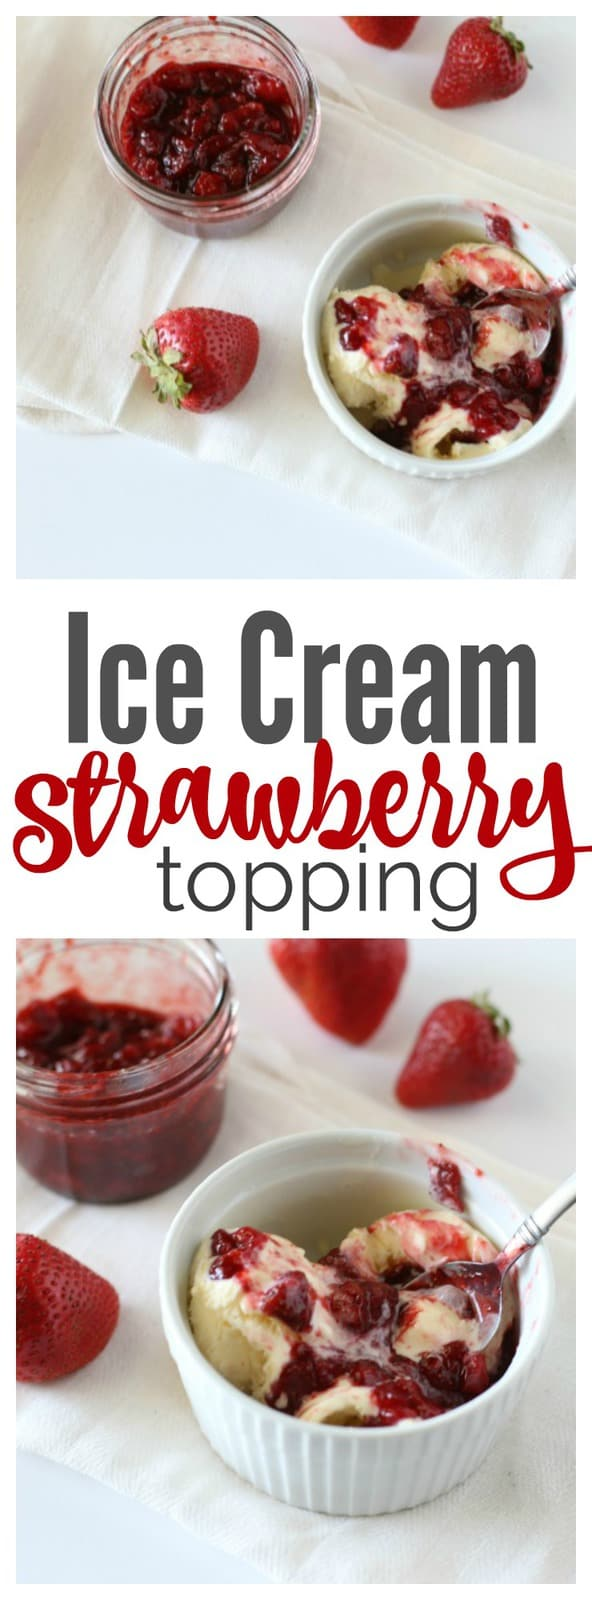 Strawberry Ice Cream Topping